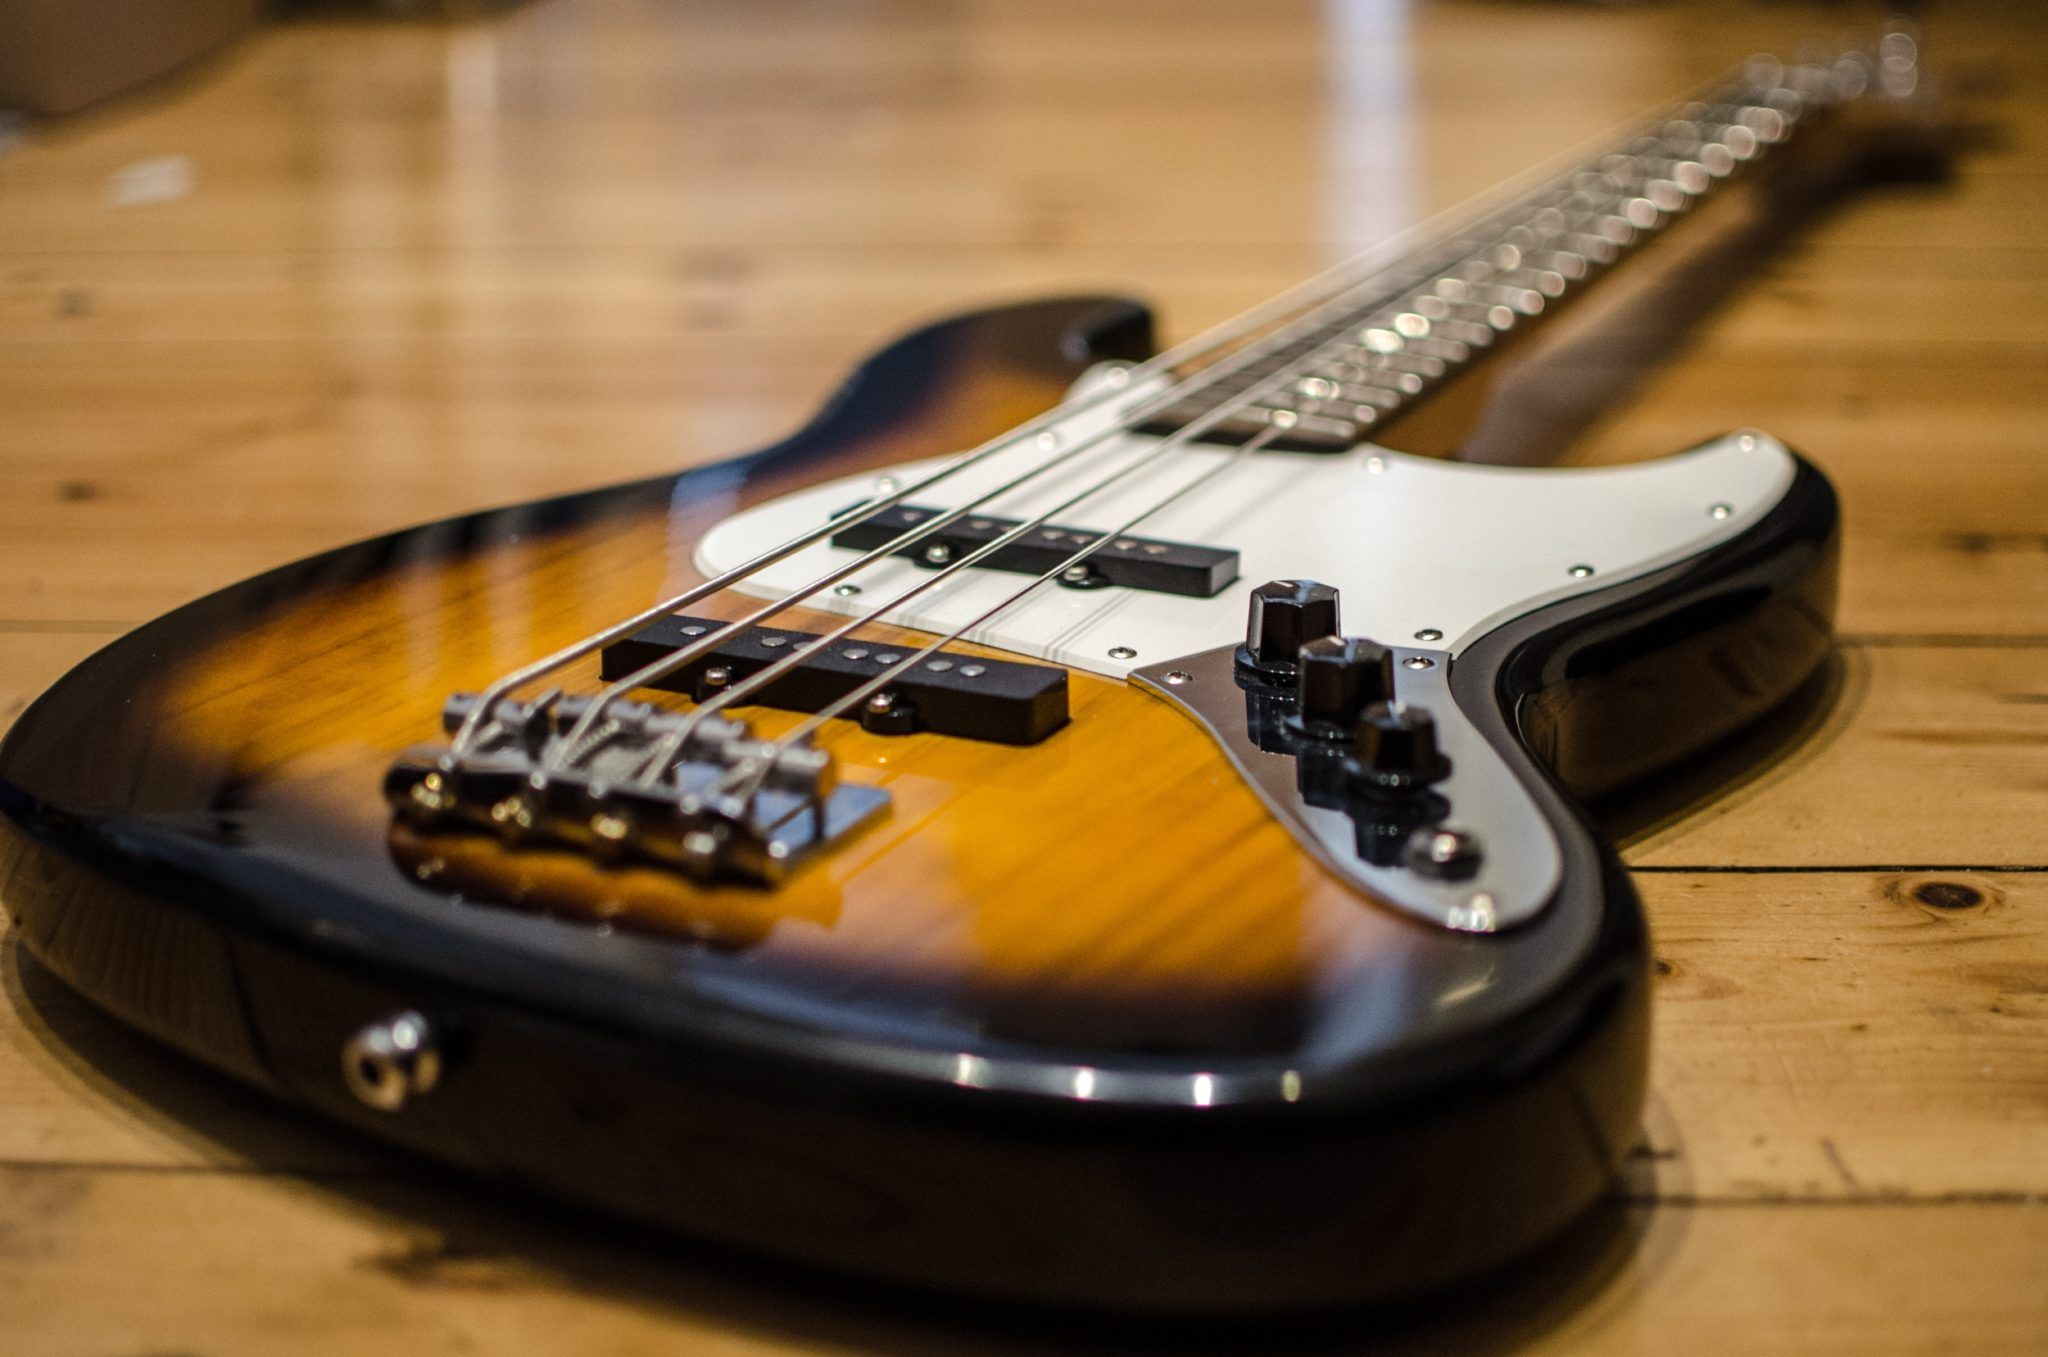 Tips On Tightening Up a Rhythm Section: A Bassist's Perspective